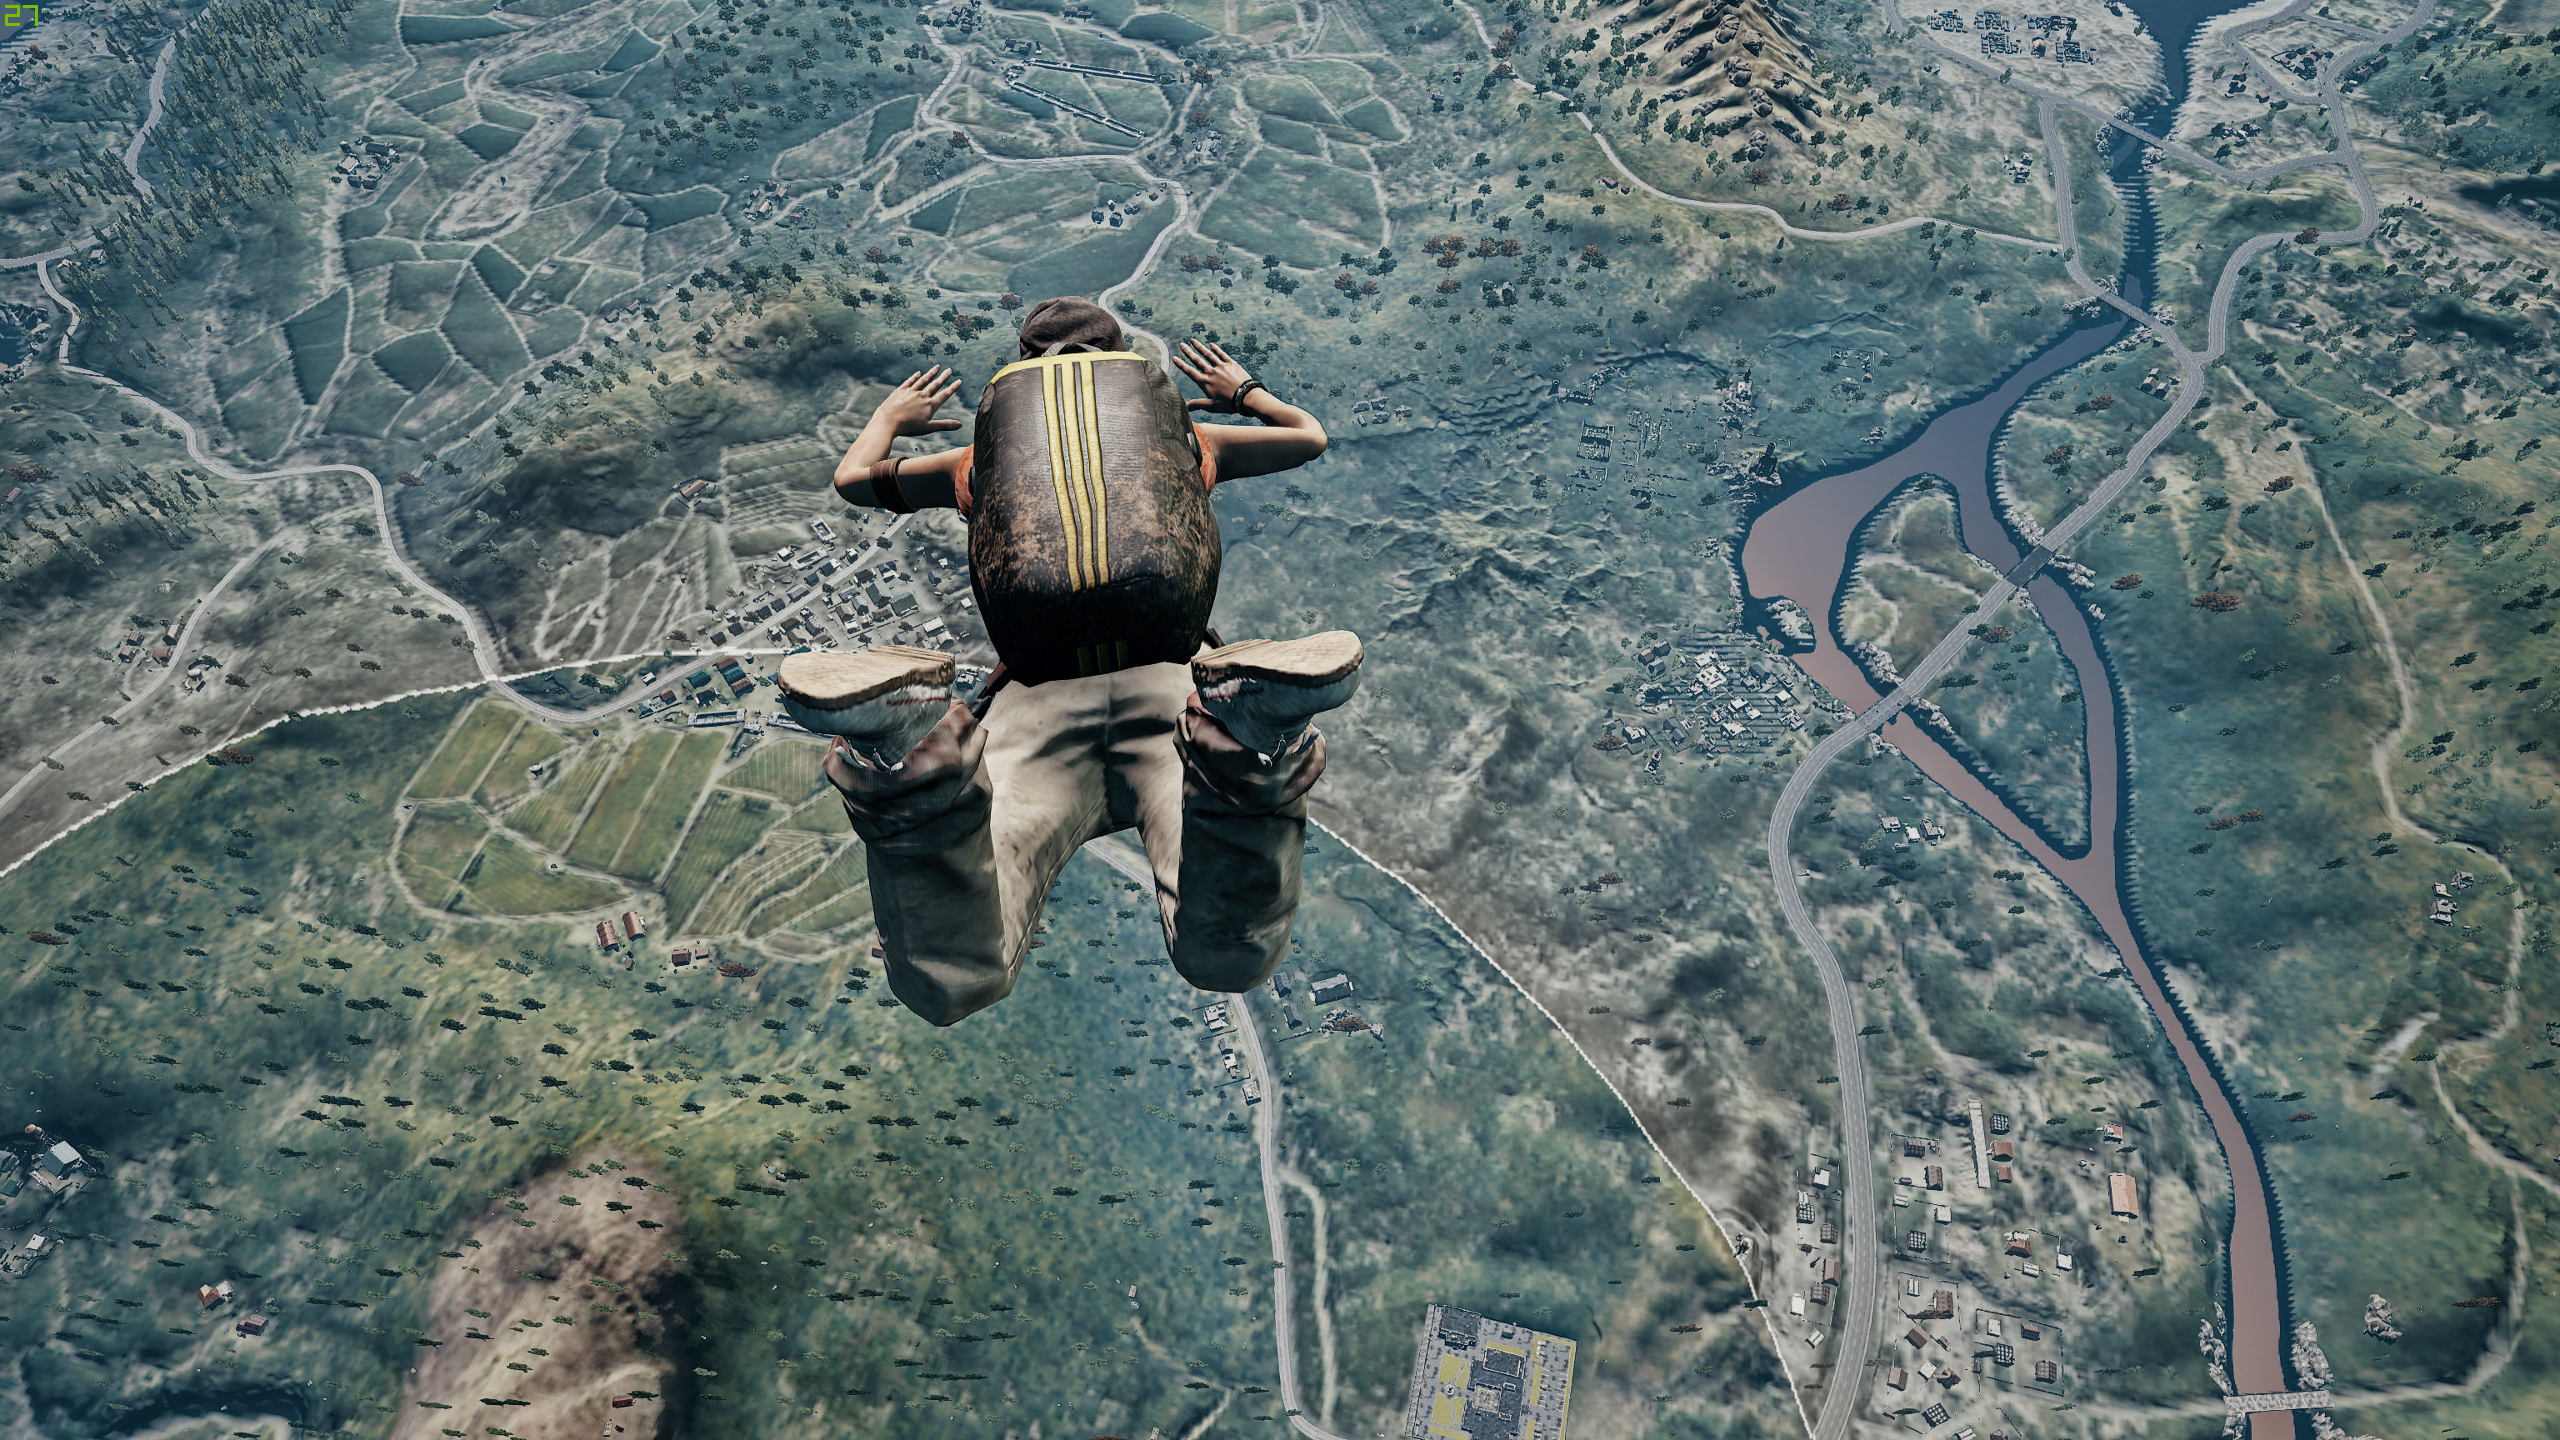 2048x1152 Pubg Bike Rider 4k 2048x1152 Resolution Hd 4k: 1920x1080 Pubg Jump From Plane 4k Laptop Full HD 1080P HD